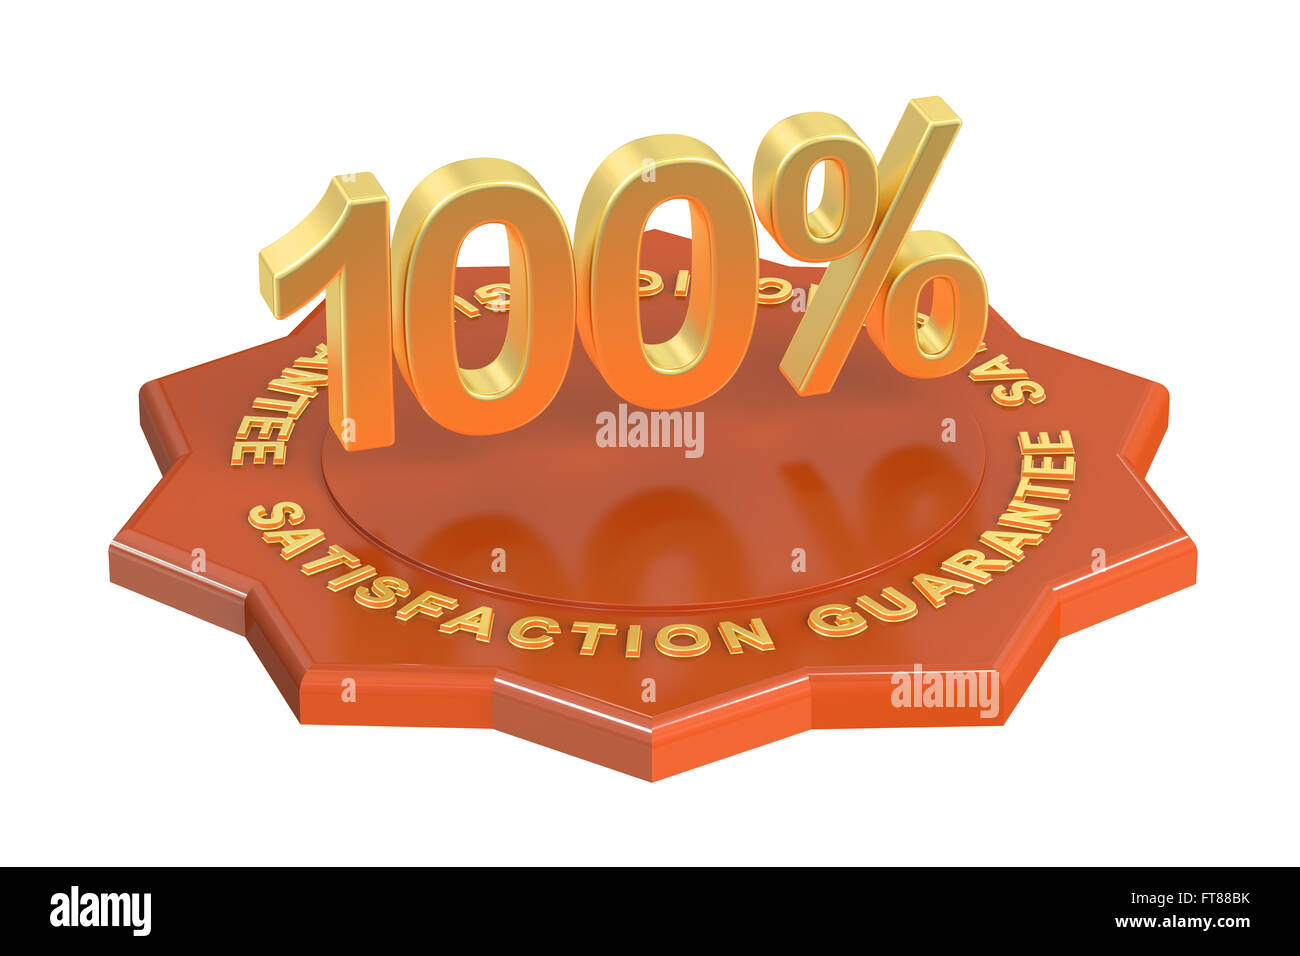 Satisfaction Guarantee 100%, 3D rendering isolated on white background - Stock Image